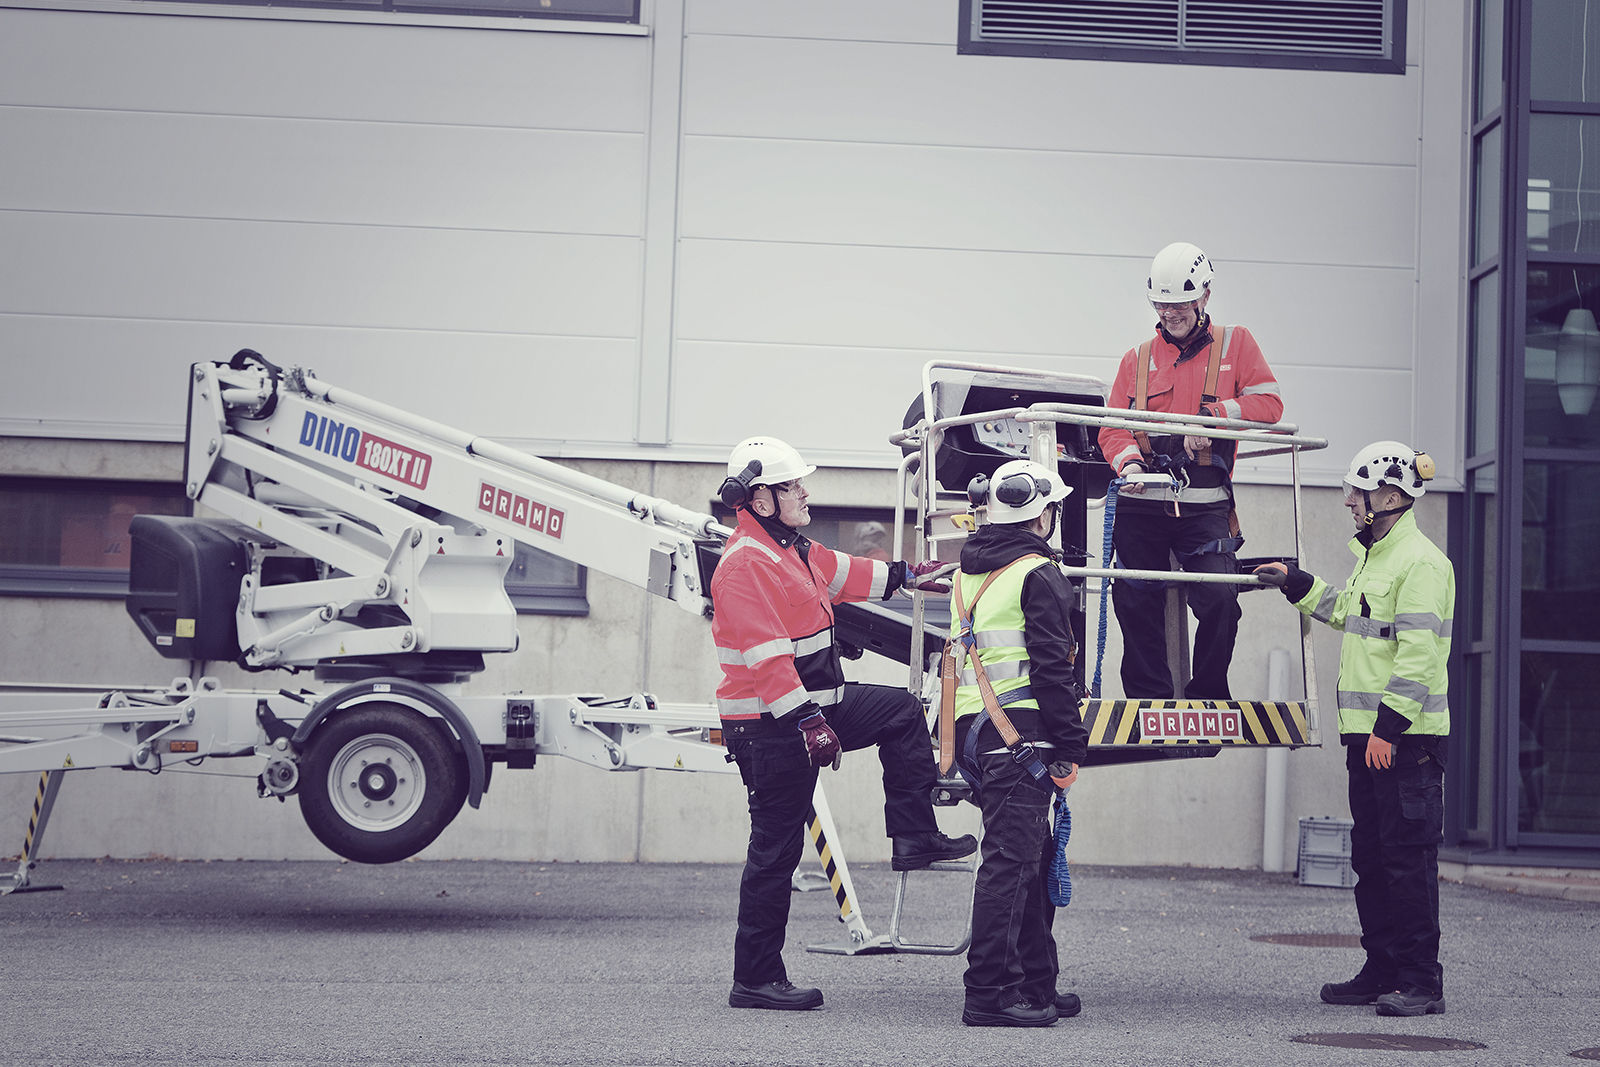 cramo-people-at-work-02.jpg